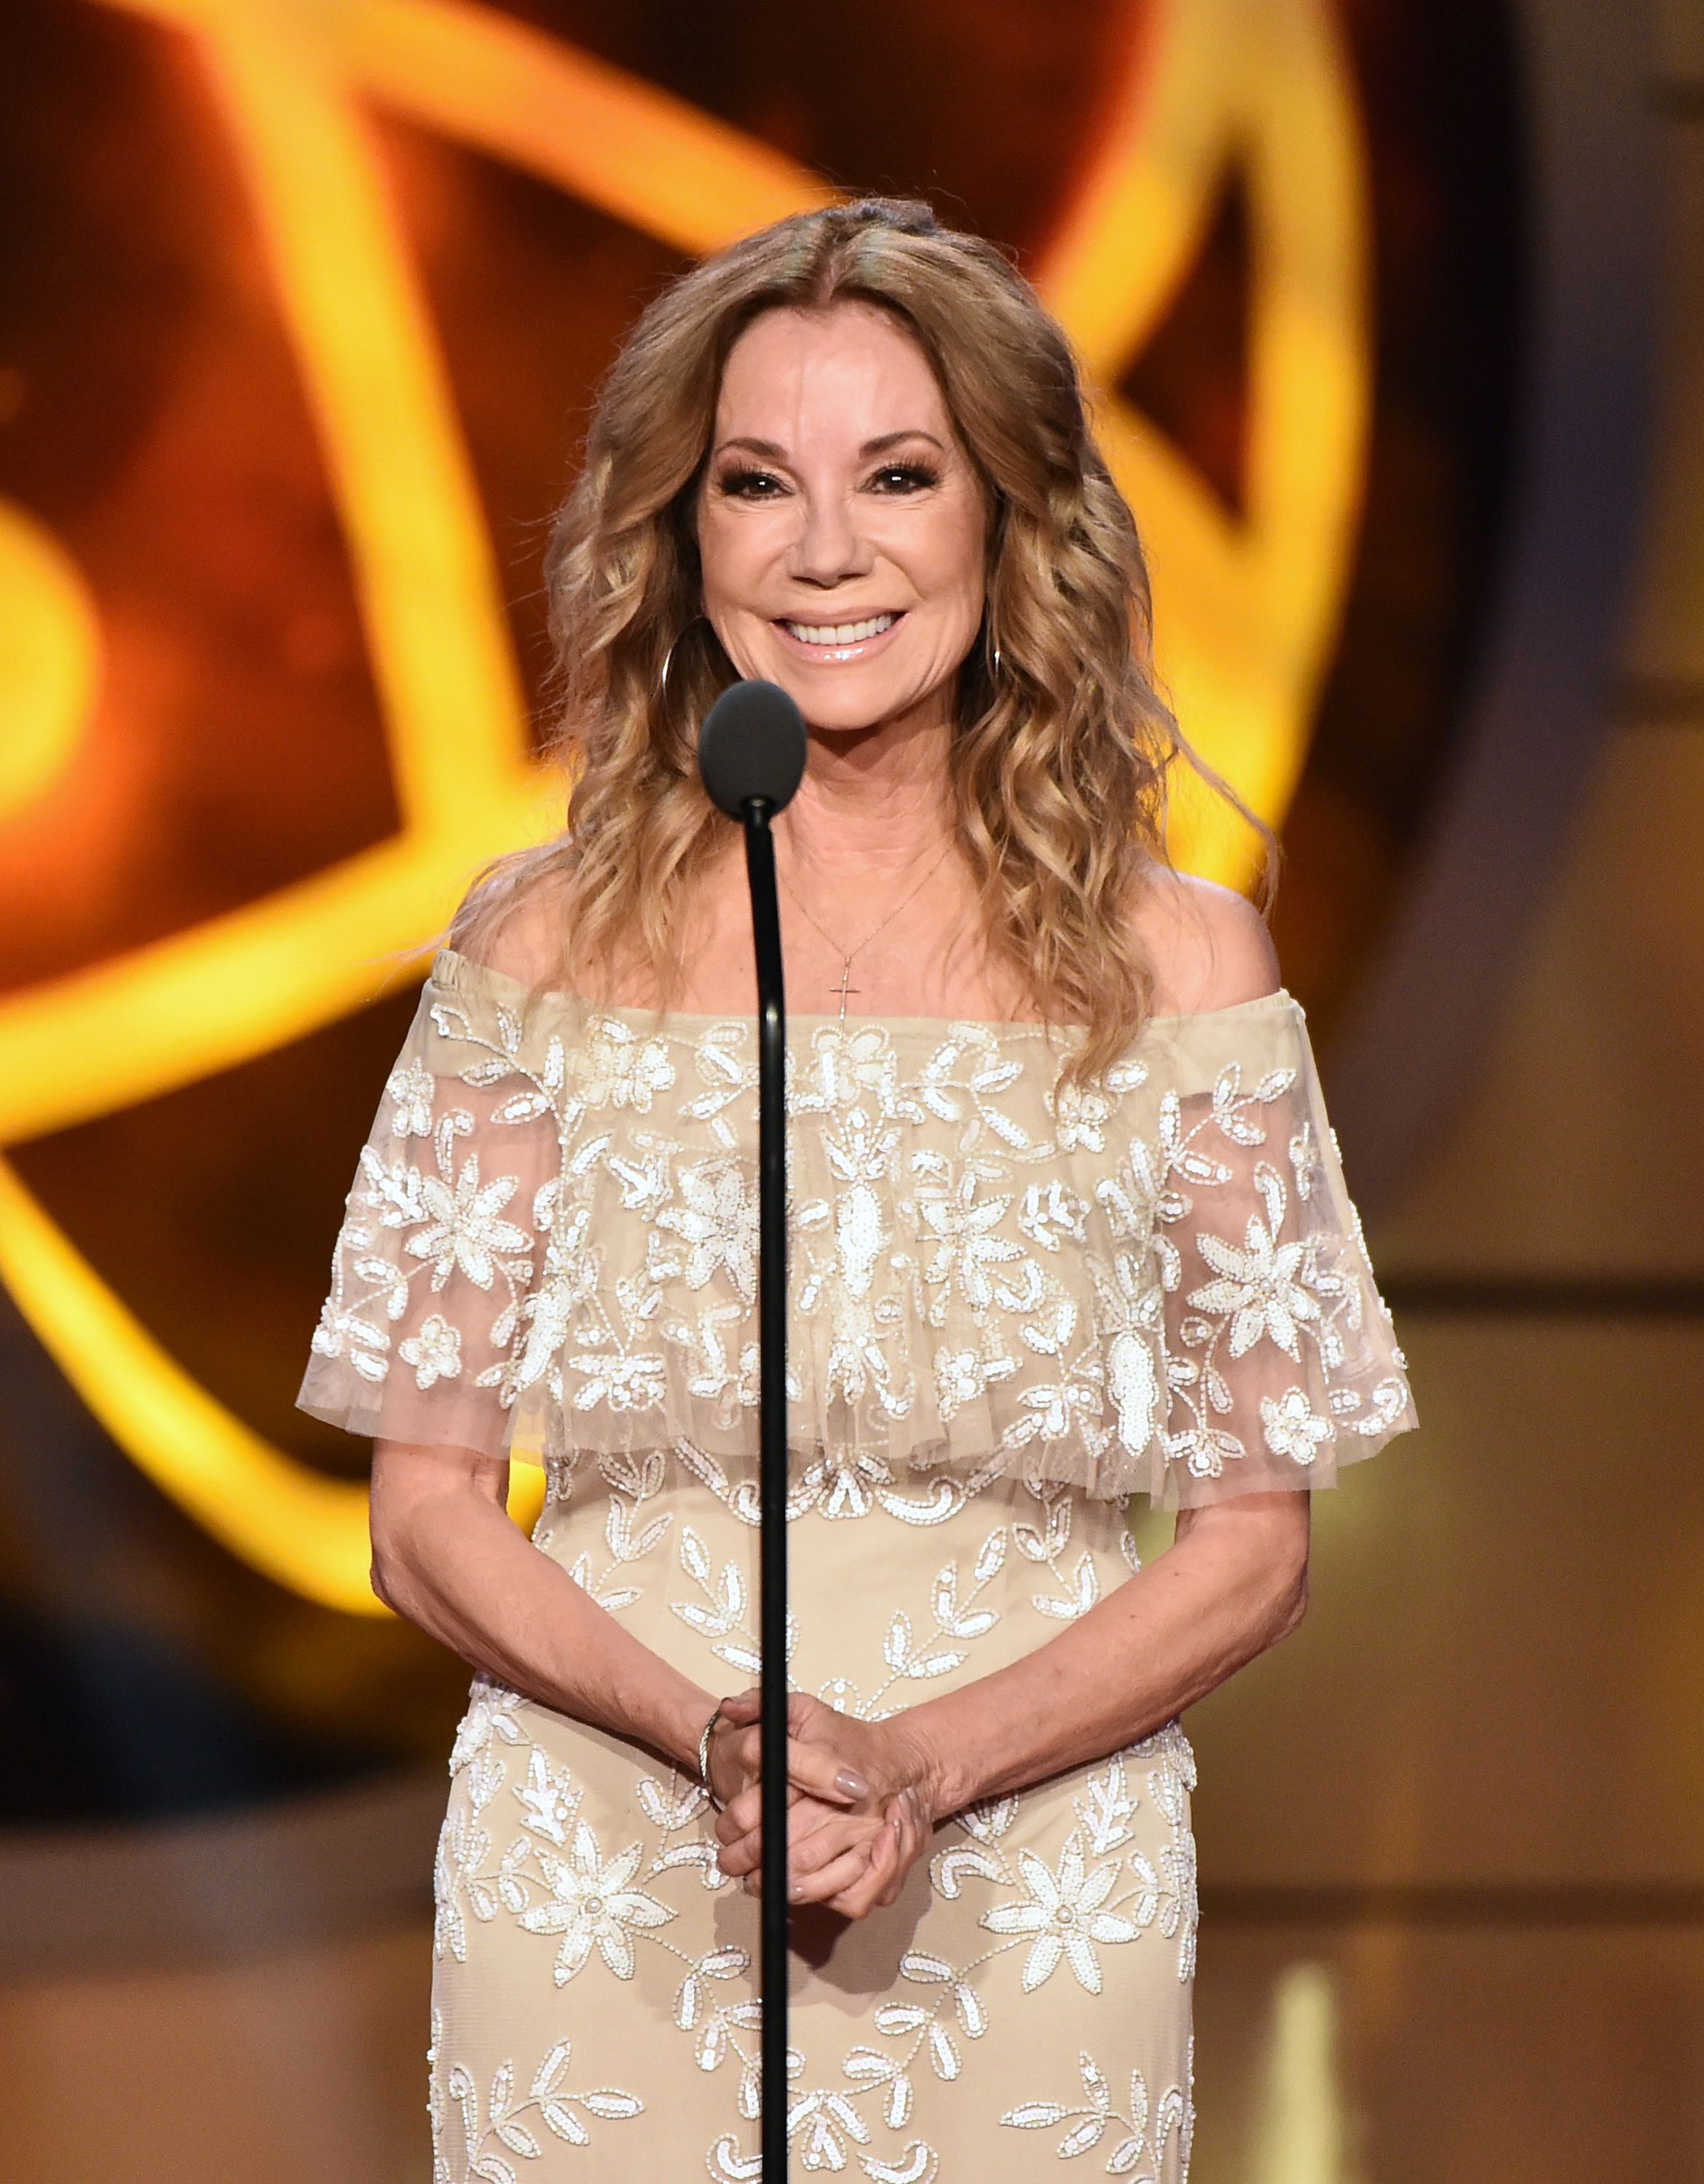 Kathie Lee Gifford speaks at the 46th annual Daytime Emmy Awards at Pasadena Civic Center on May 05, 2019 in Pasadena, California | Photo: Getty Images